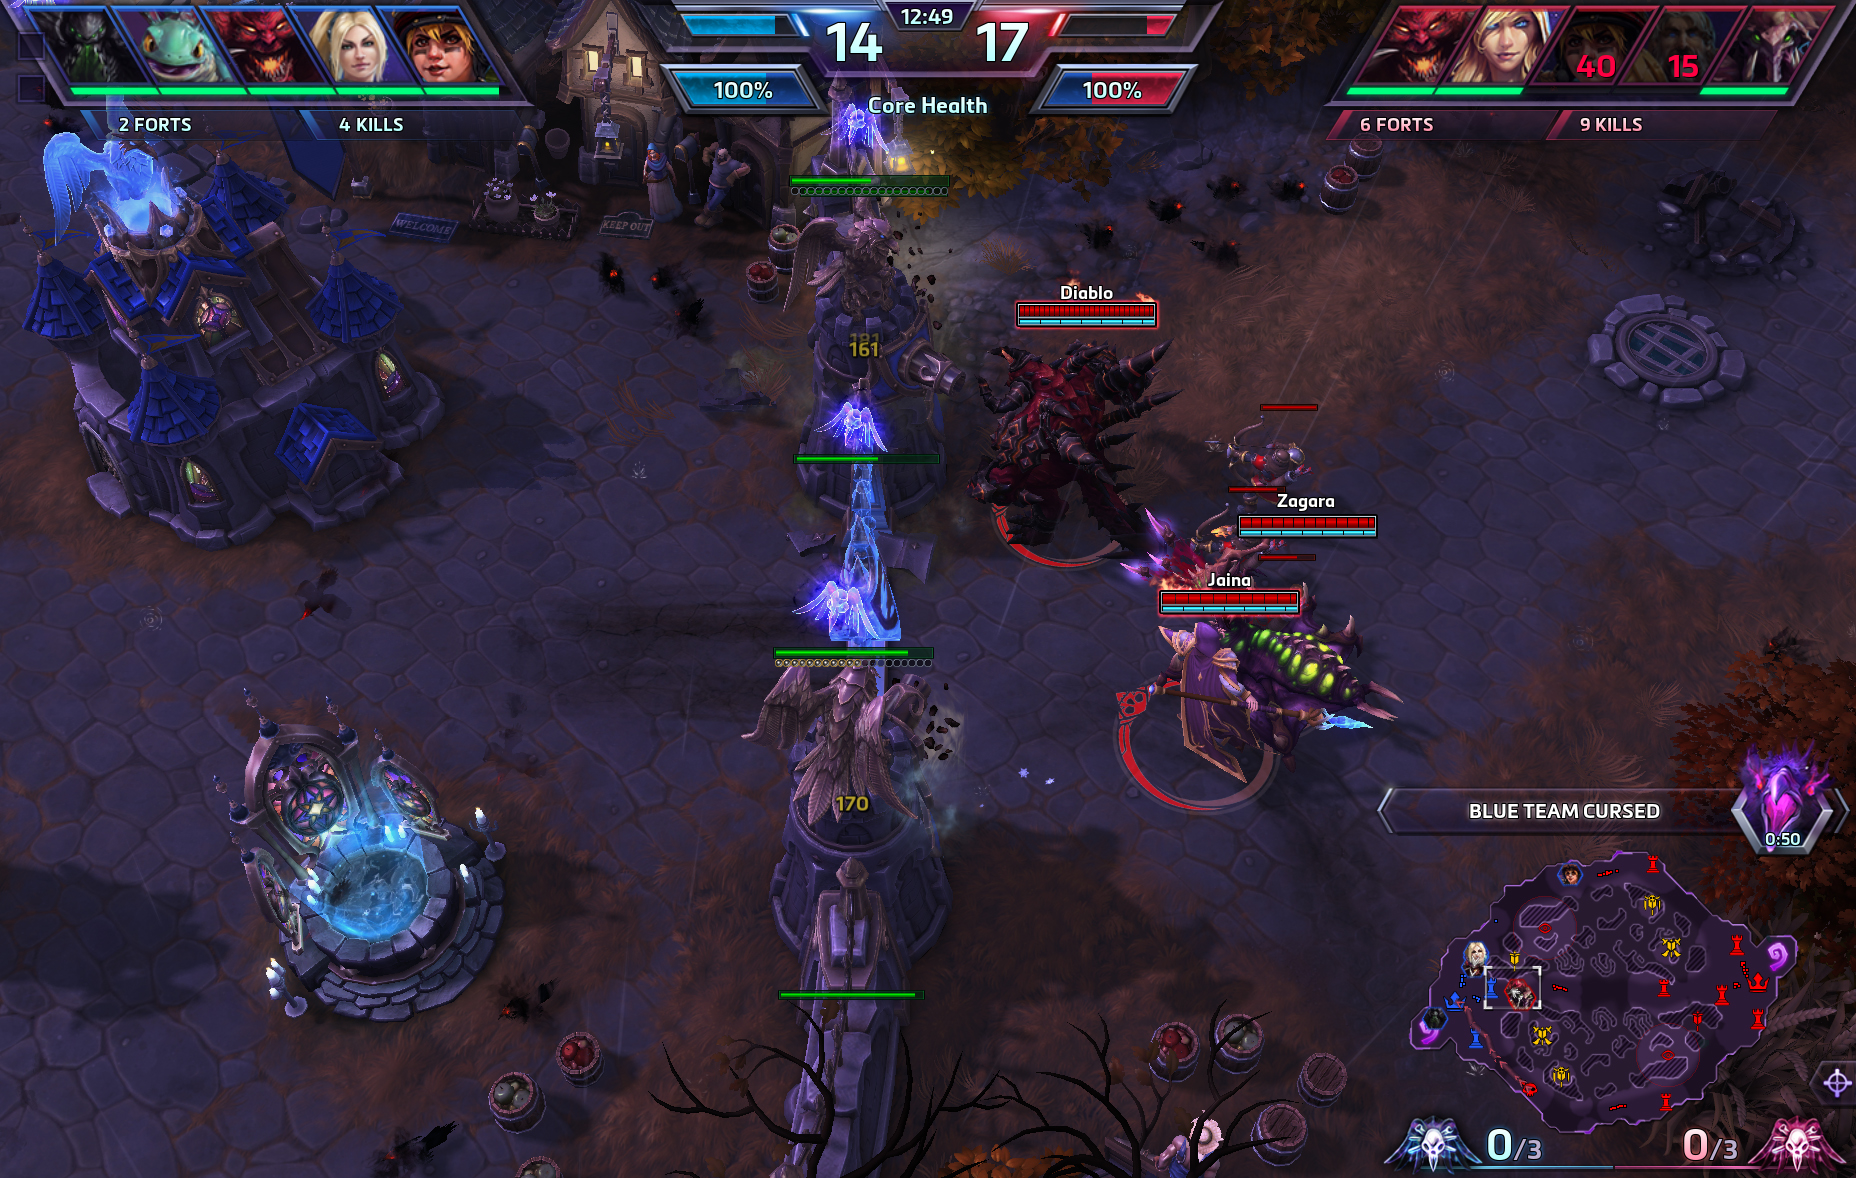 Heroes of the storm matchmaking bad